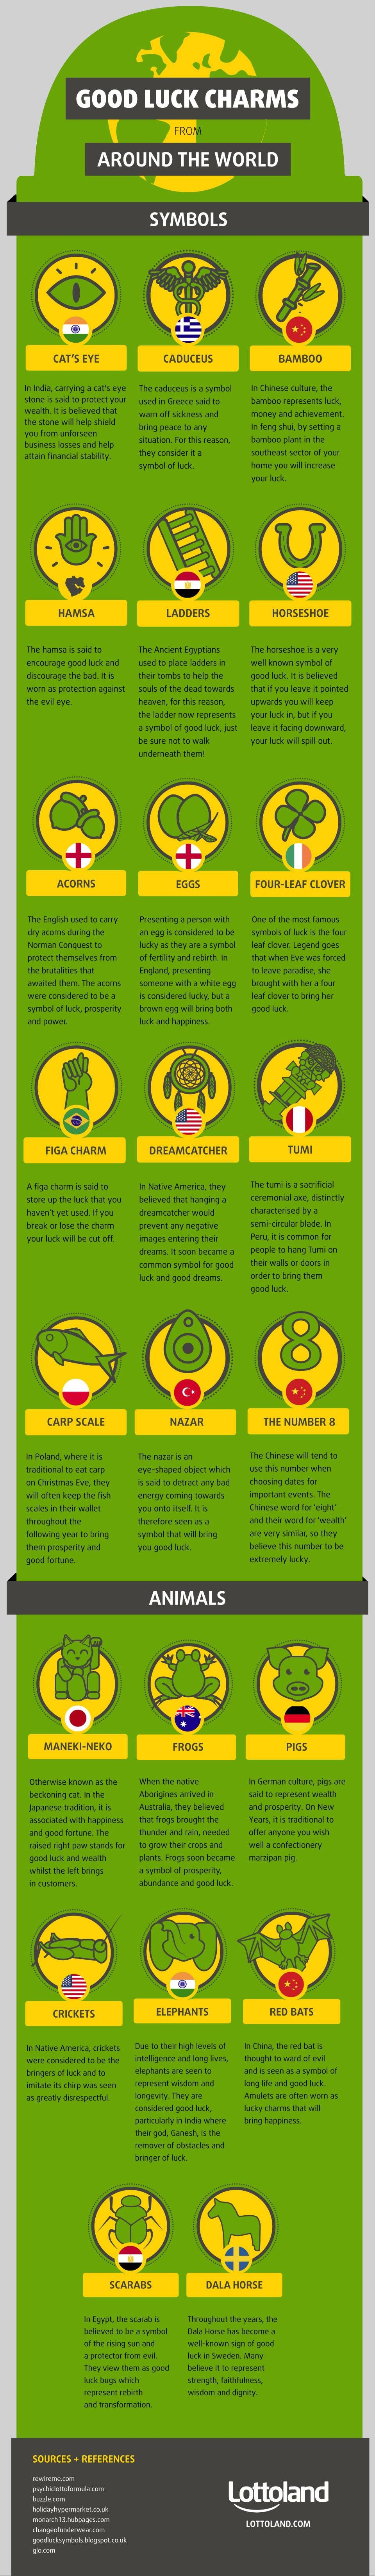 Good Luck Charms From Around The World Infographic Travel